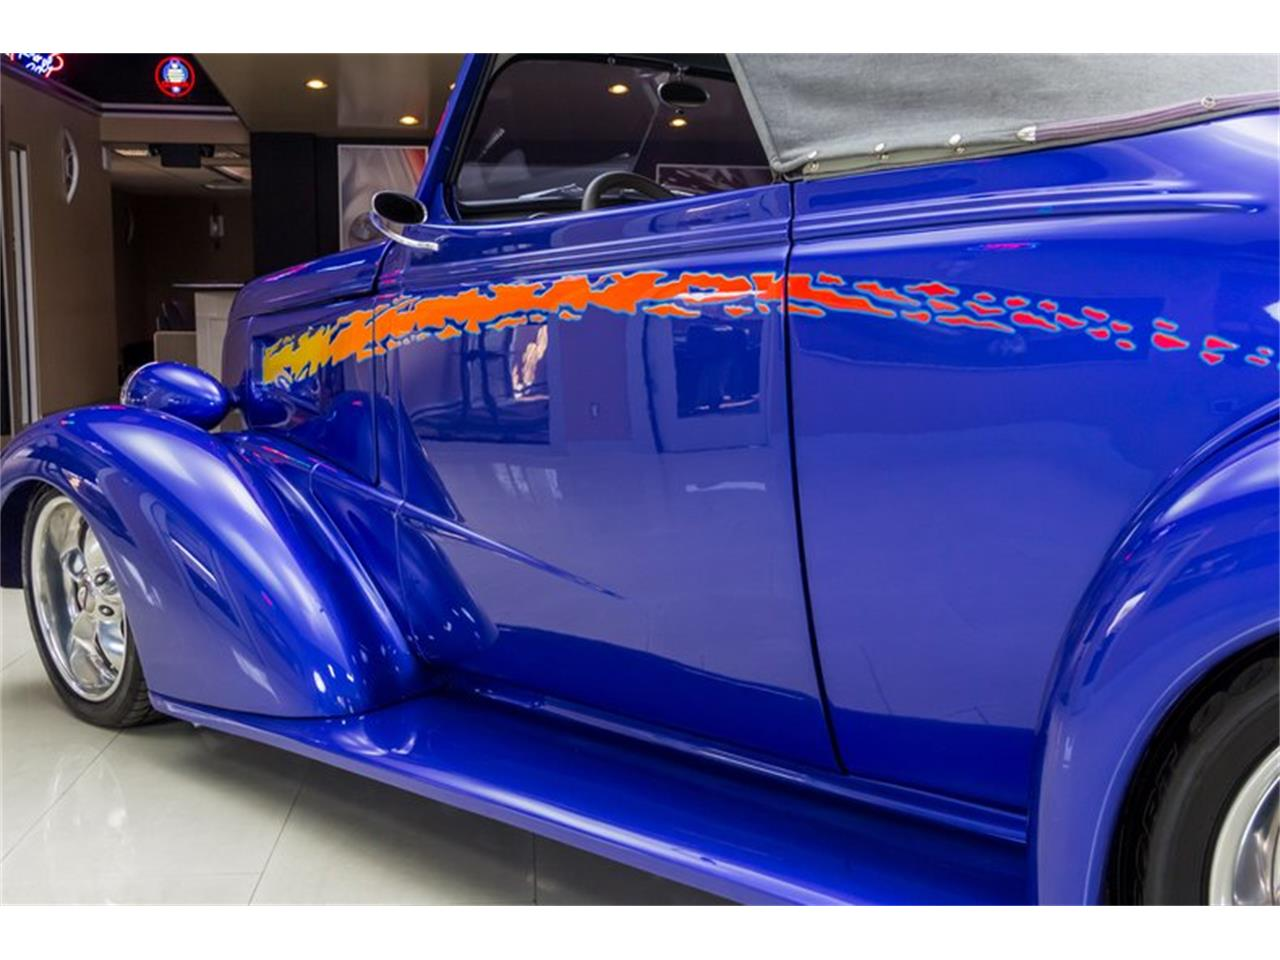 Large Picture of '37 Chevrolet Antique - $49,900.00 Offered by Vanguard Motor Sales - N75T